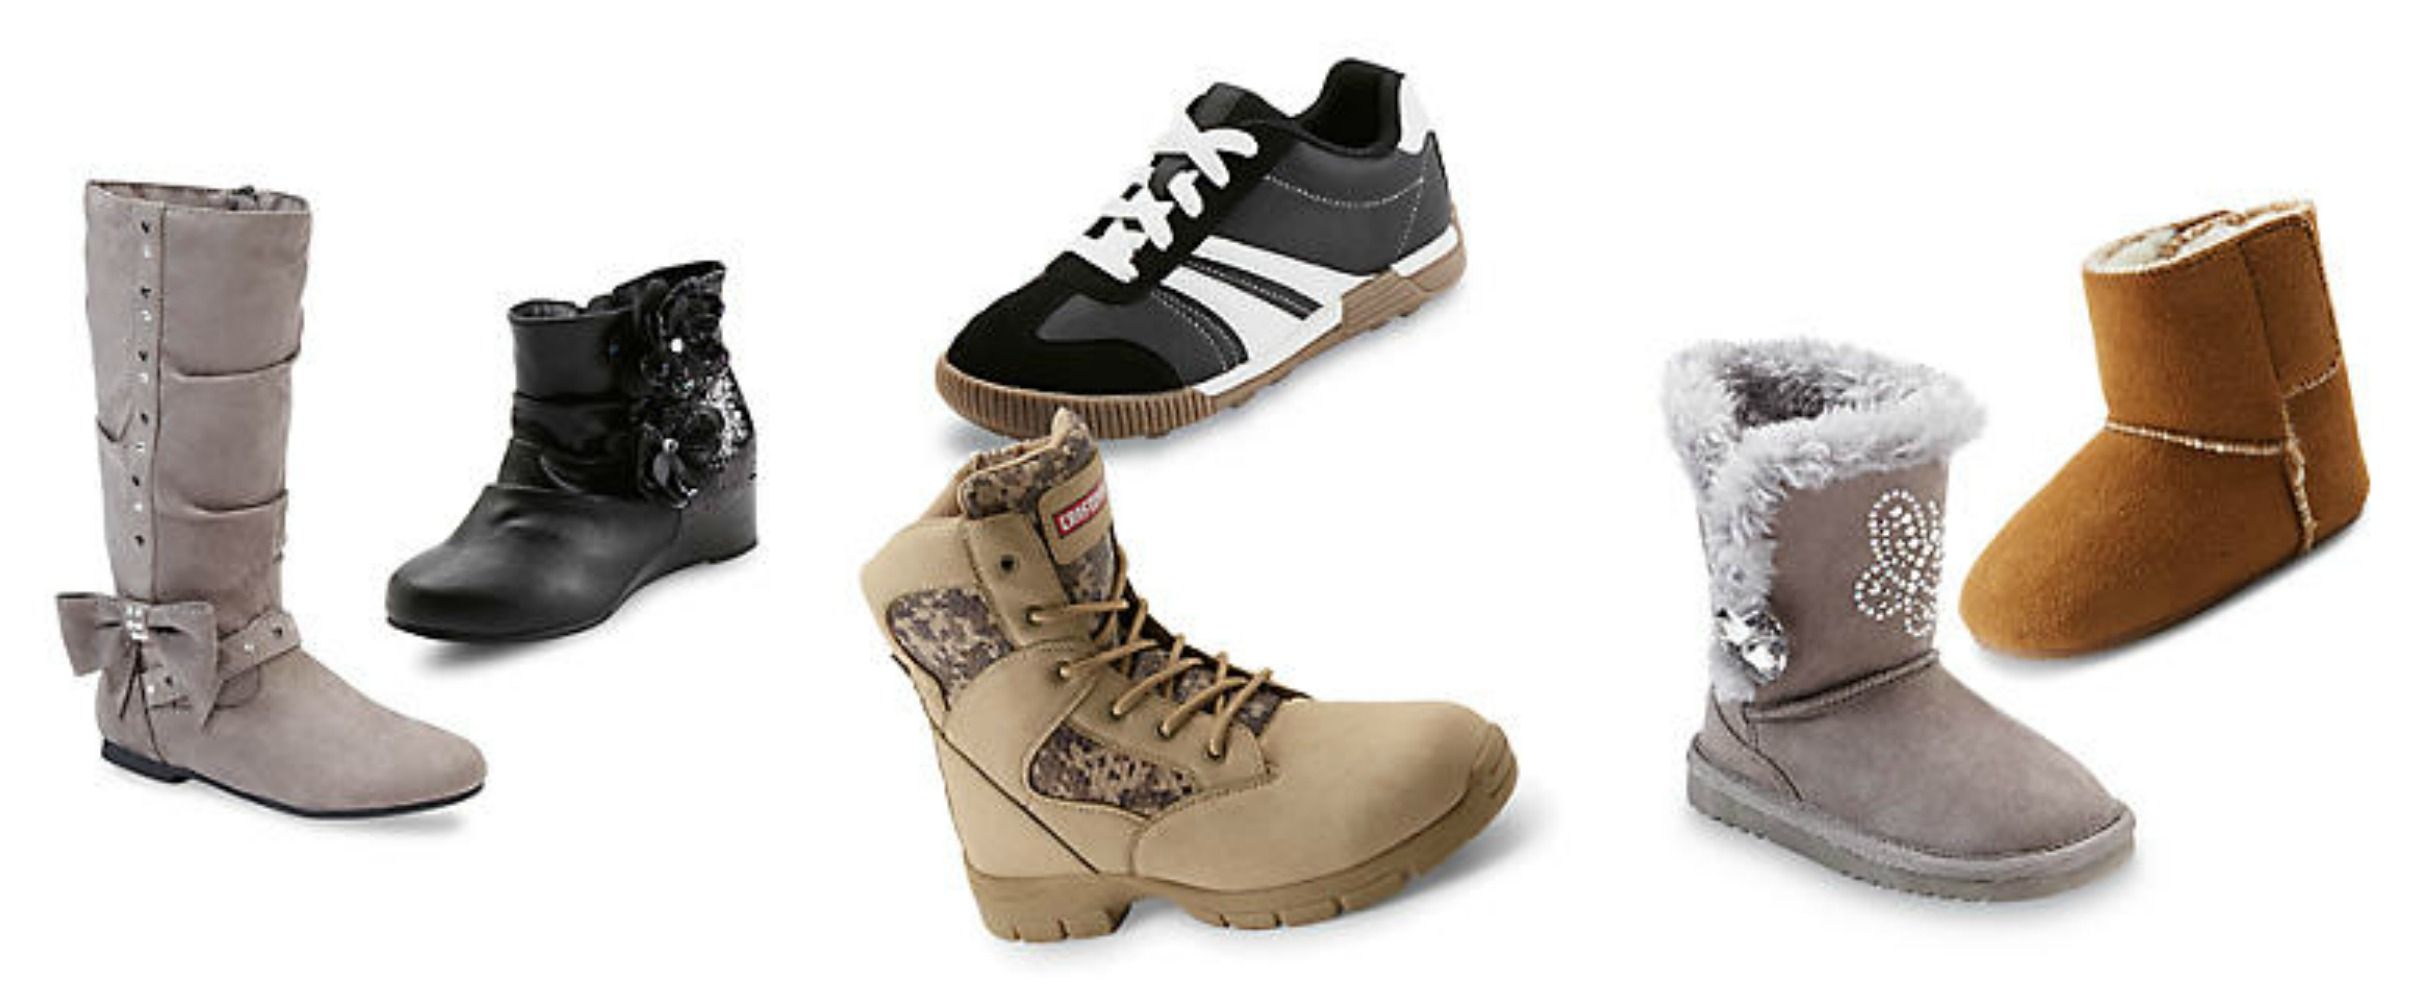 Shop our selection of comfortable, fashion-forward shoes on sale for men, women, and children.